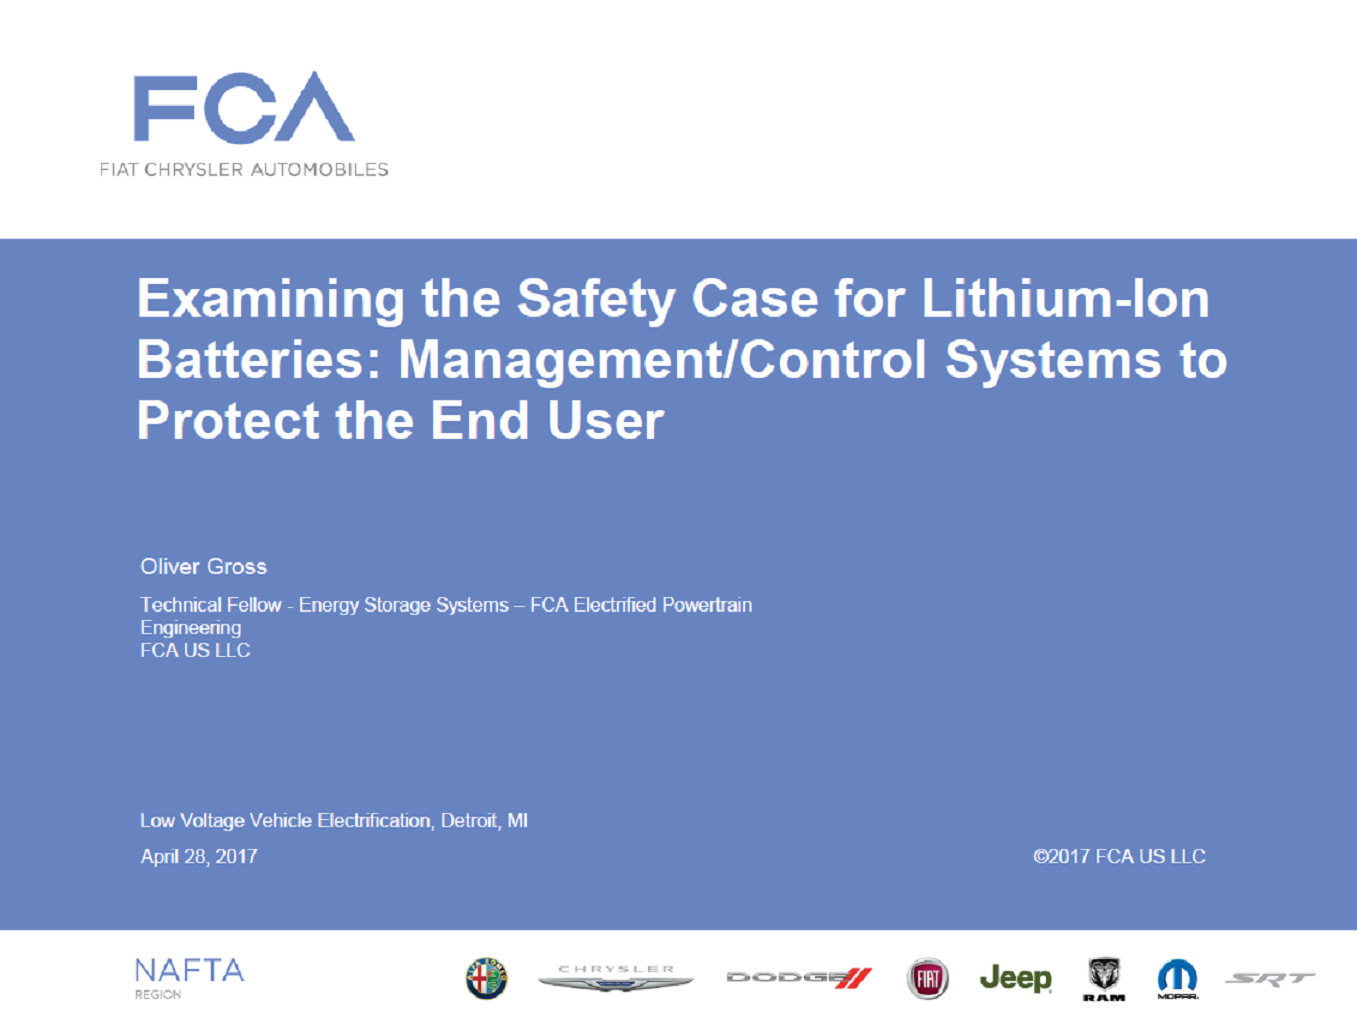 Examining The Safety Case For Lithium Ion Batteries: Management/Control Systems To Protect The End-User